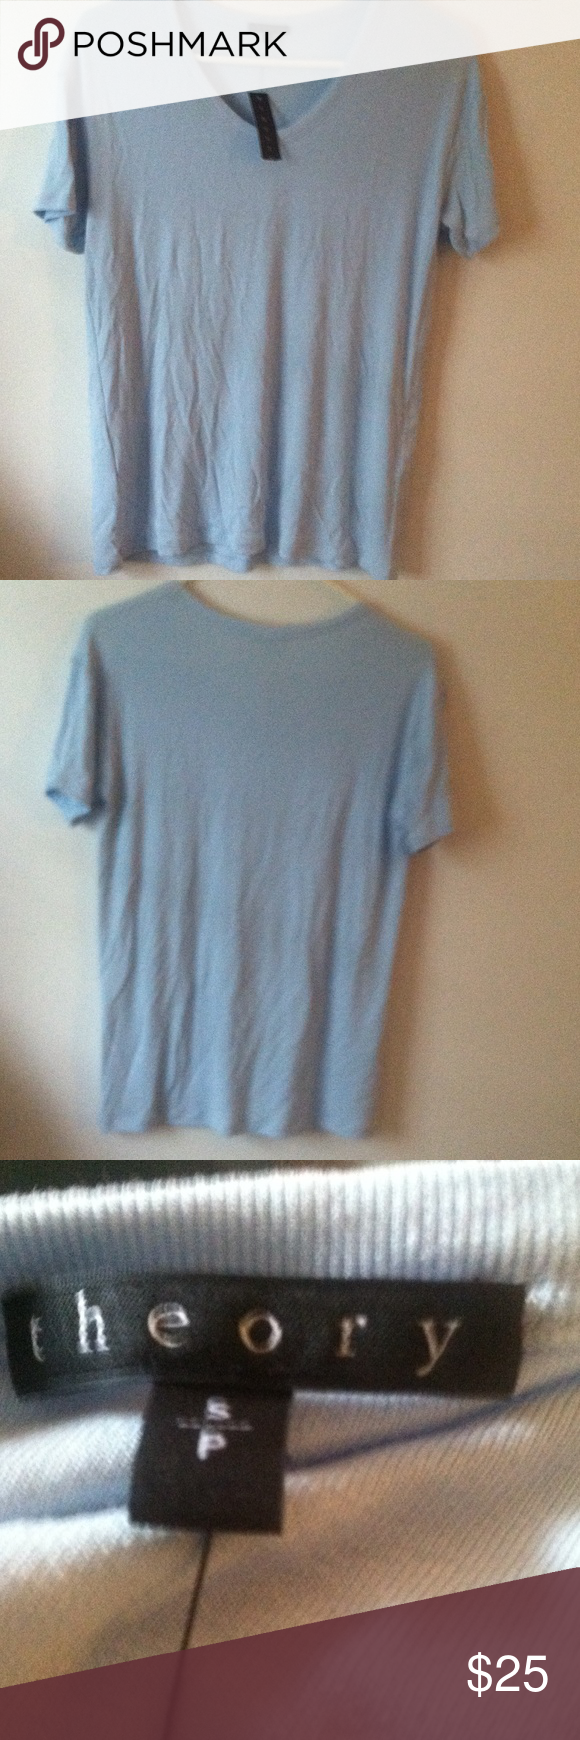 Theory T-shirt Bluffton ribbed viscose t-shirt. Faded blue,size small, NWT(tag is not completely intact), v-neck, short sleeve Theory Shirts Tees - Short Sleeve